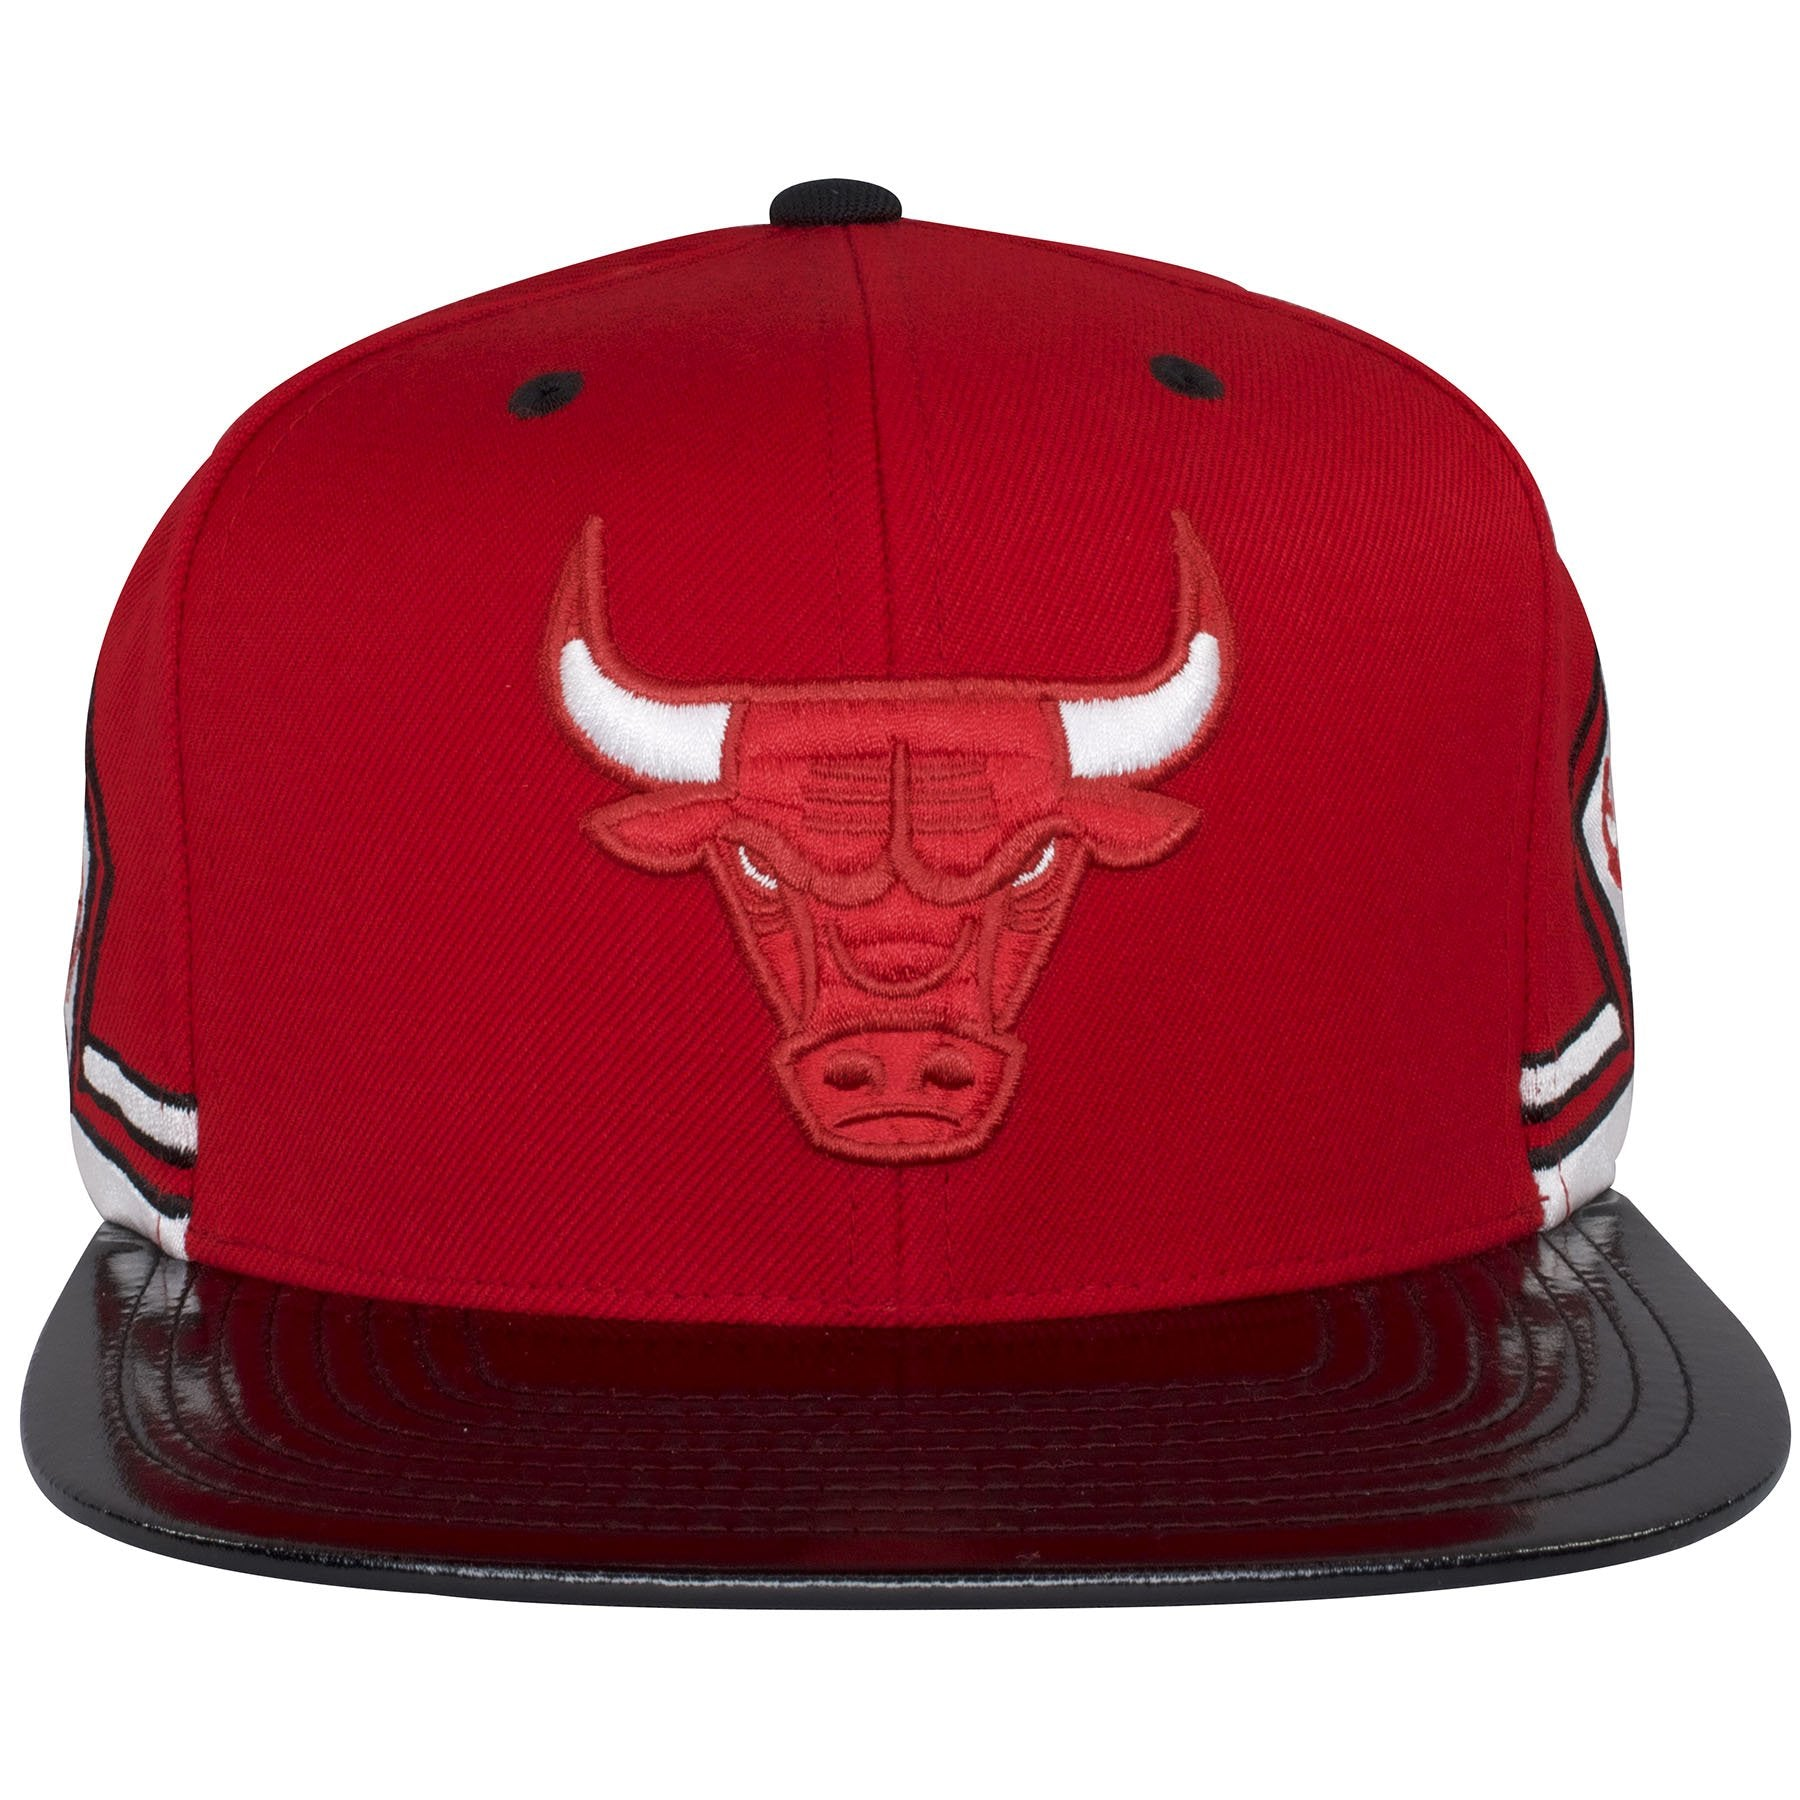 6e3ef1b6b30 The flat bill of this Chicago Bulls red snapback is made with a black  patent leather